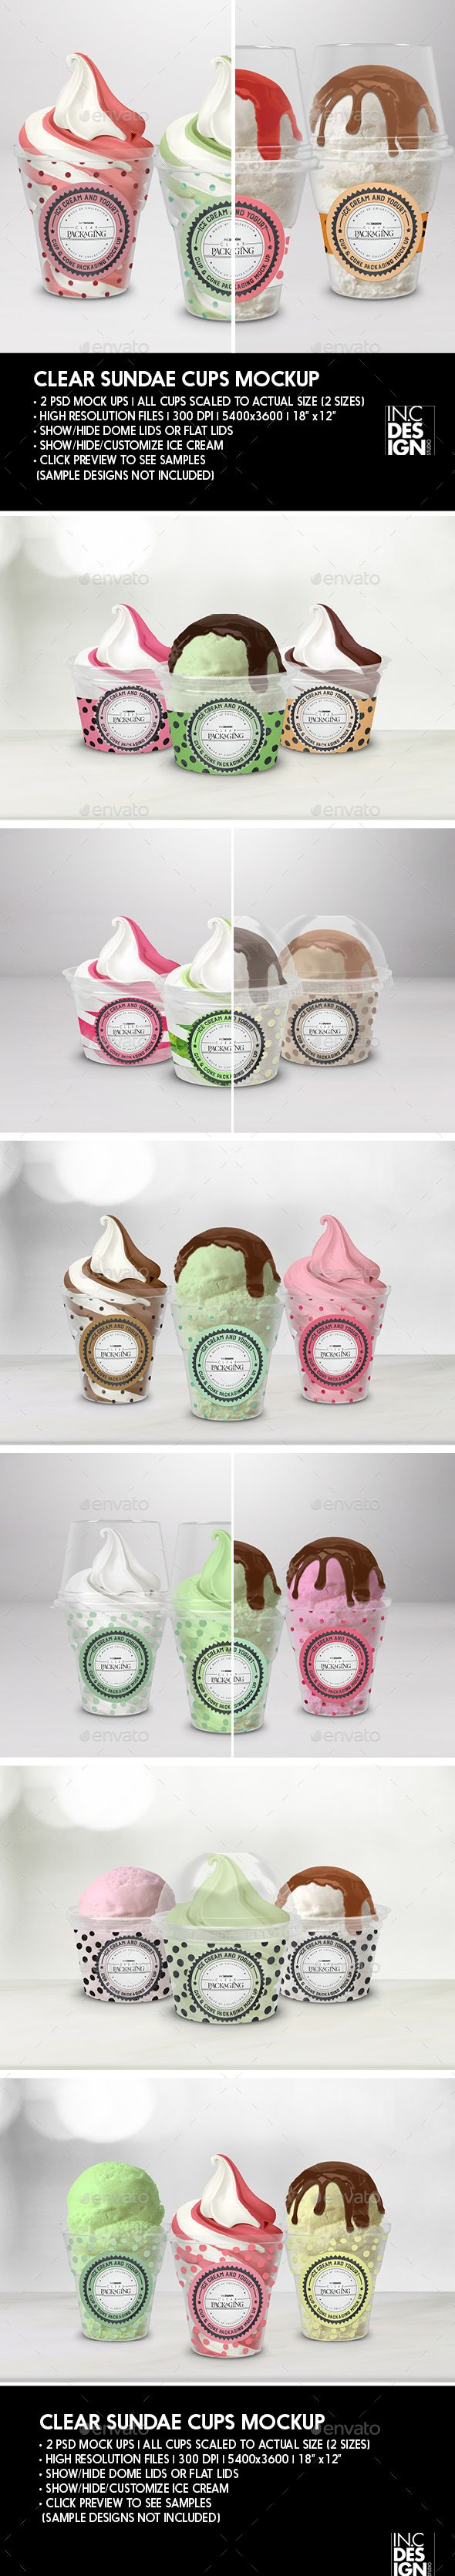 Clear Sundae Ice Cream Cups Packaging Mock up - Food and Drink Packaging